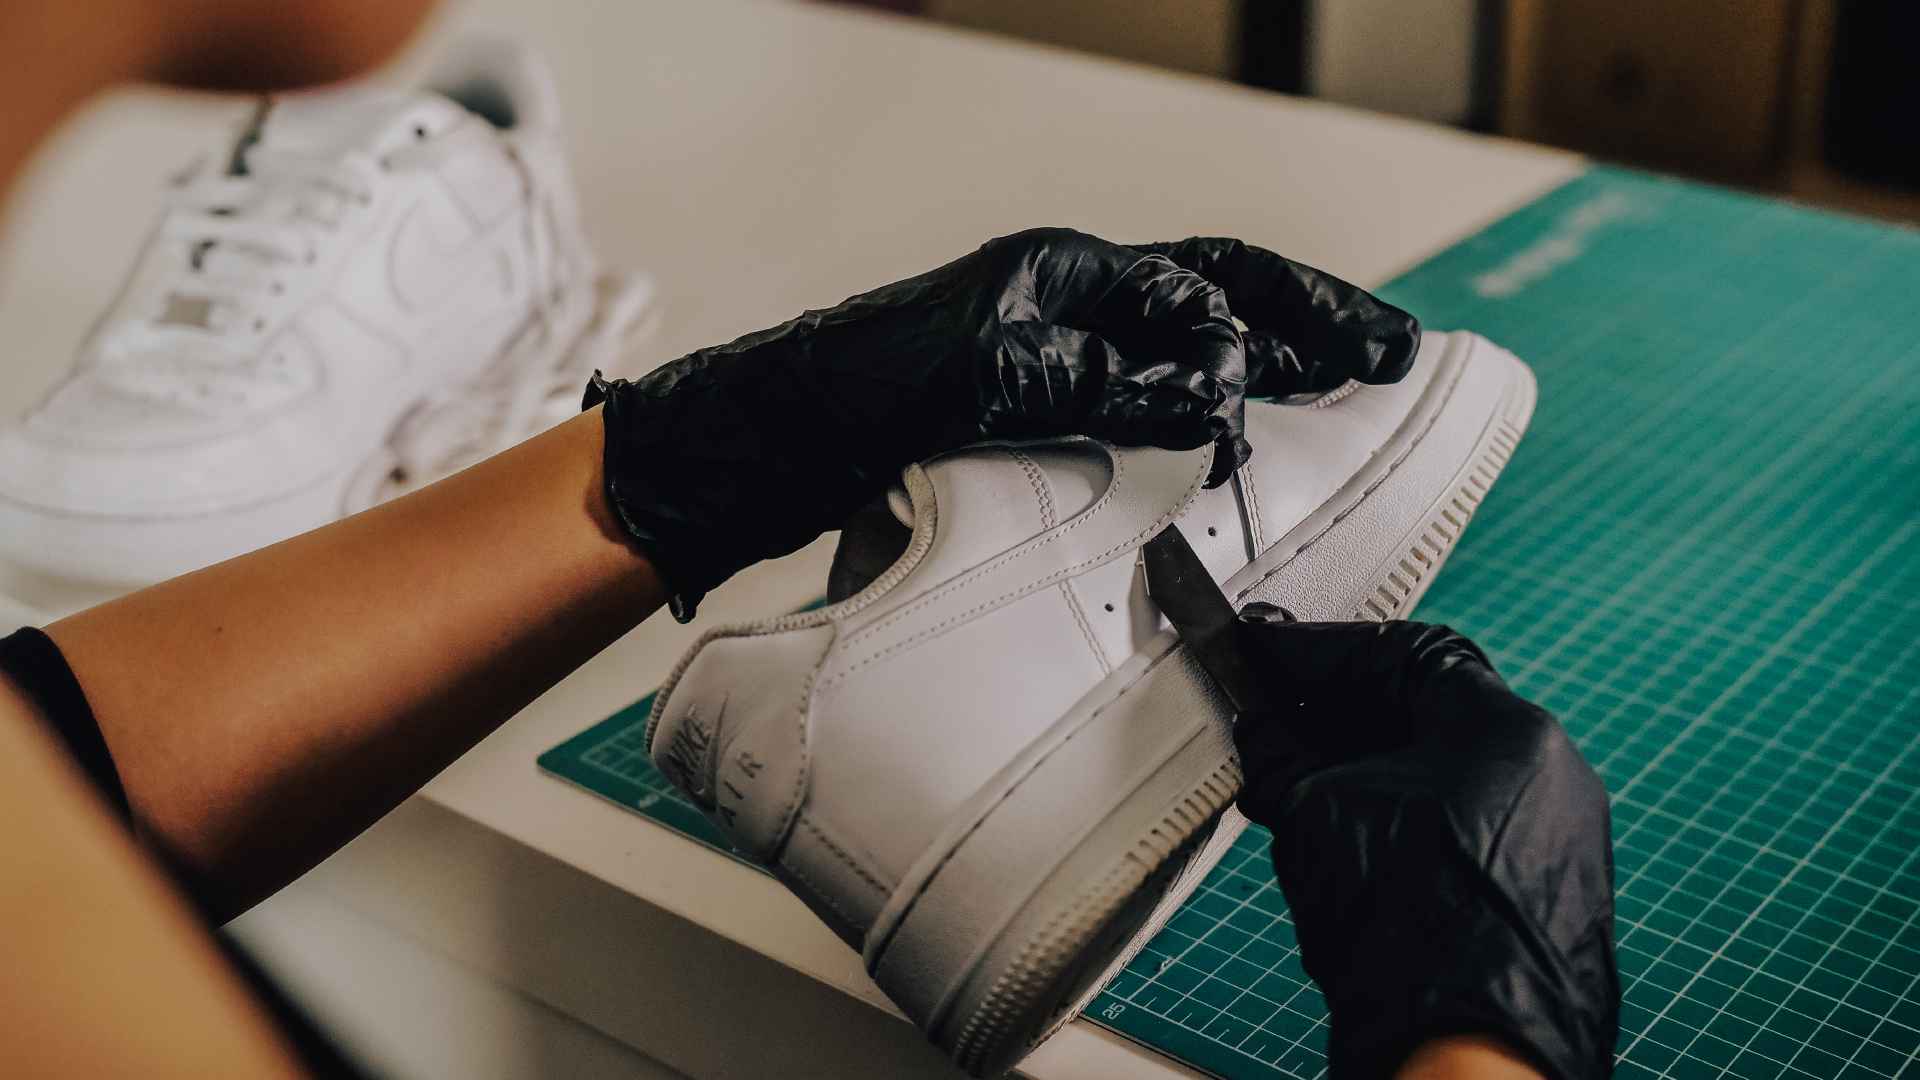 What does Footshop upcycling project 2020 mean?